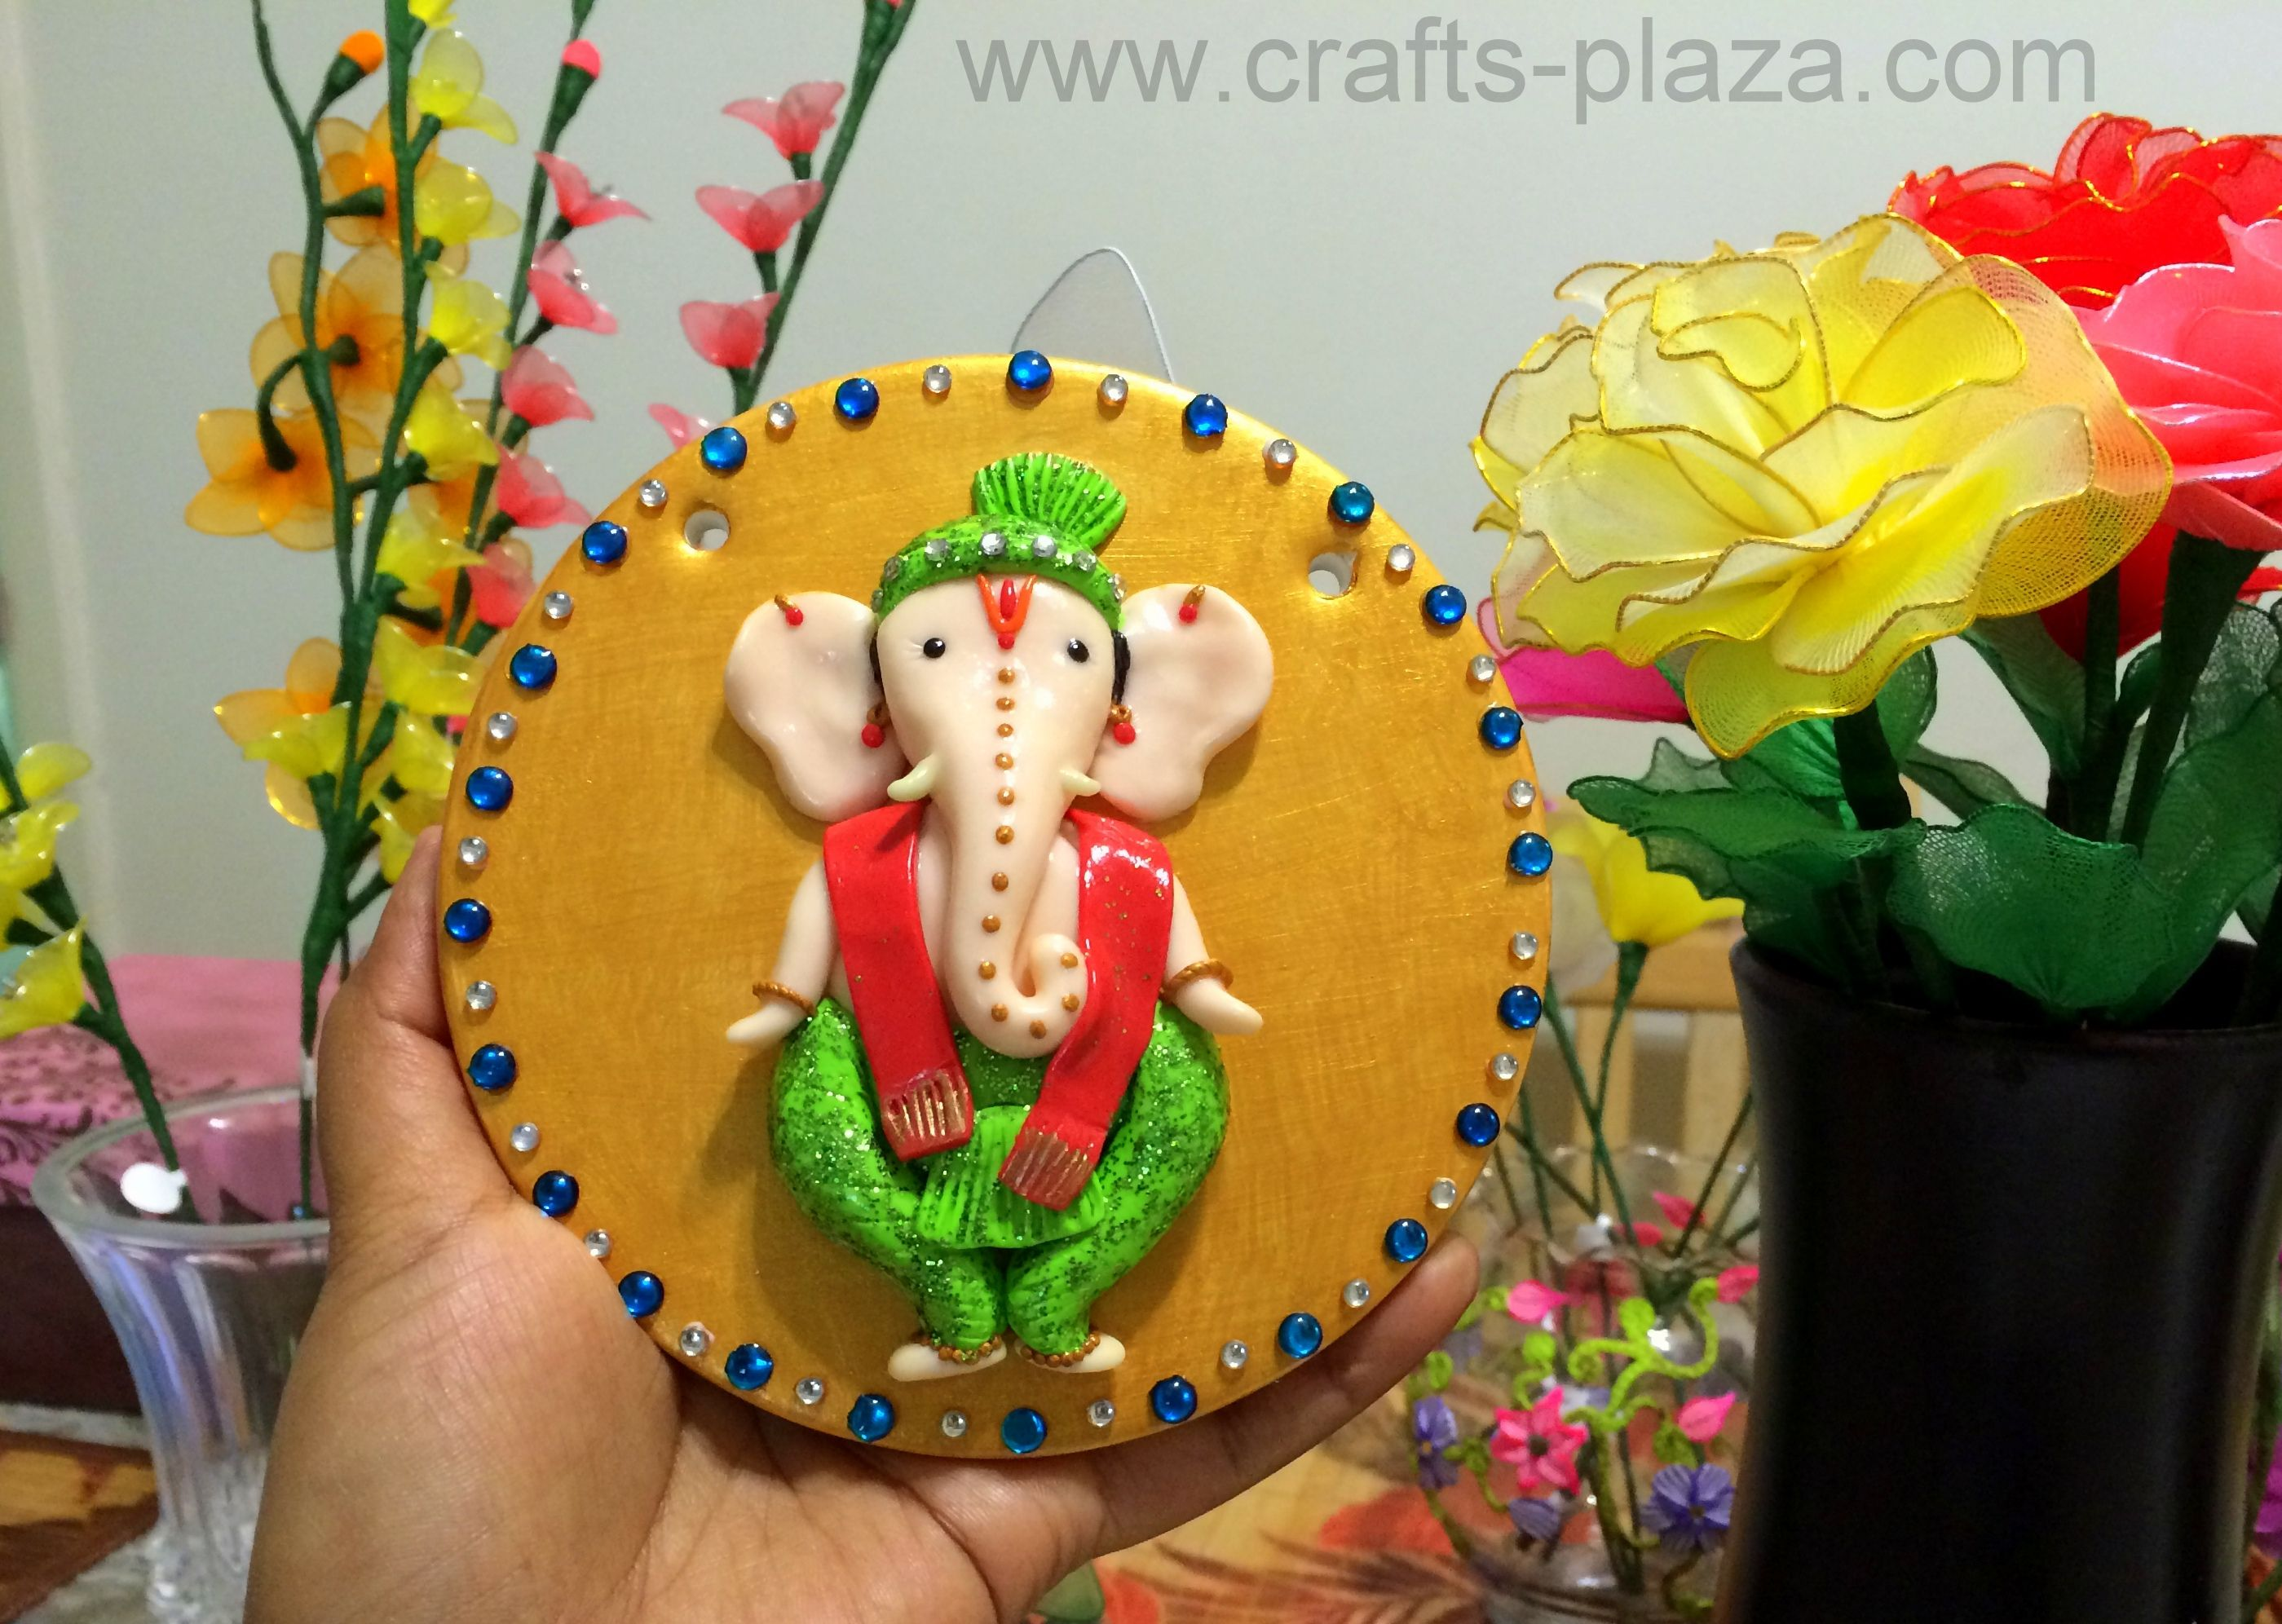 Ganesha wallfront door decor made with polymer clay on a ceramic ganesha wallfront door decor made with polymer clay on a ceramic tile dailygadgetfo Images